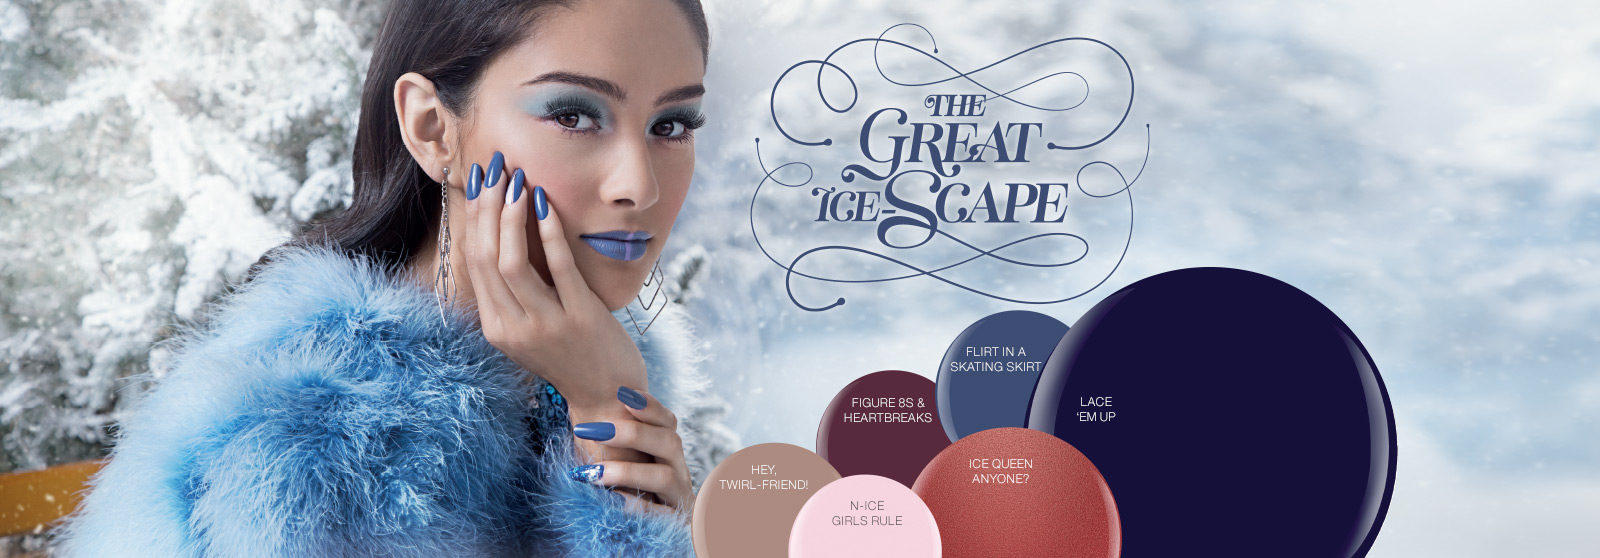 The Great Ice-scape Collection